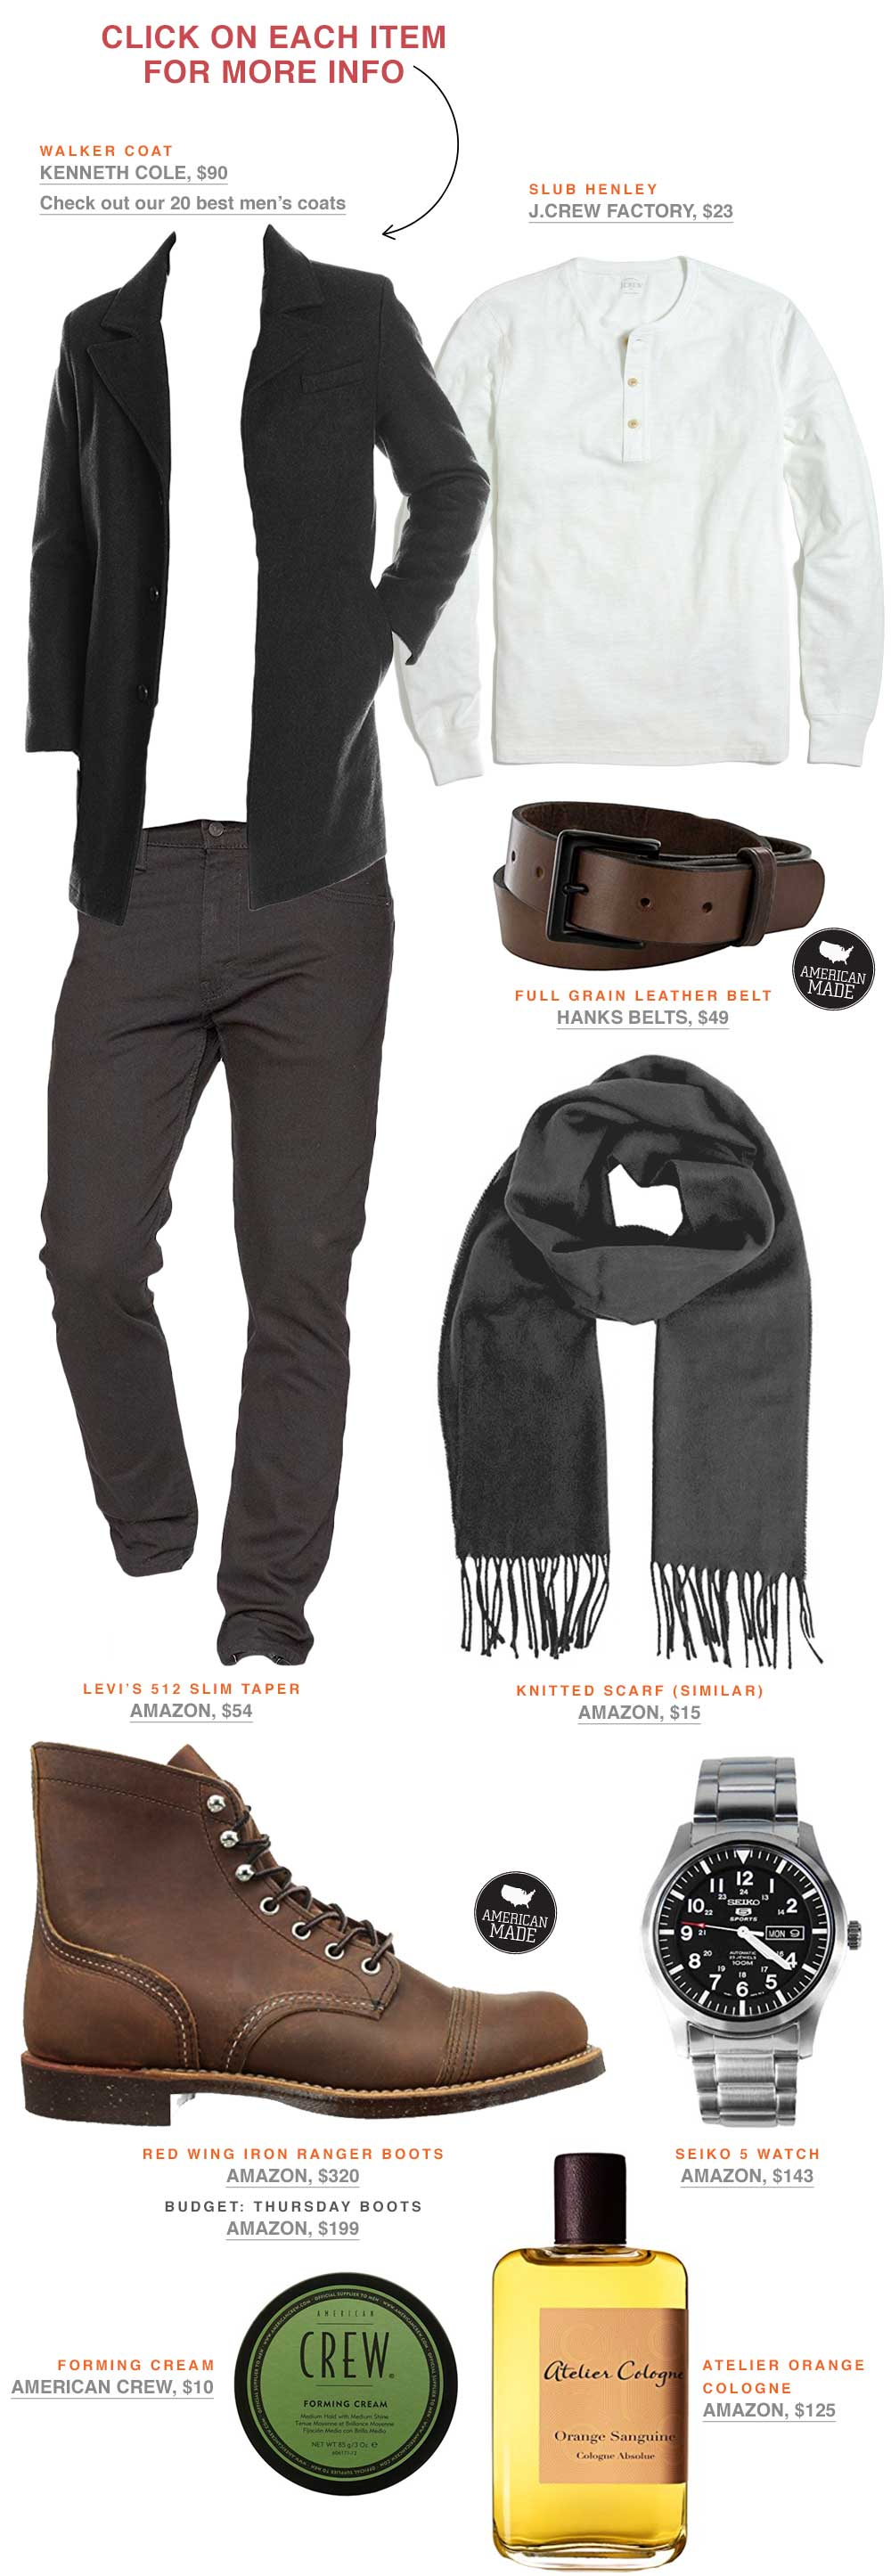 men's fashion inspiration outfit ideas live action getup primer magazine rugged fall winter